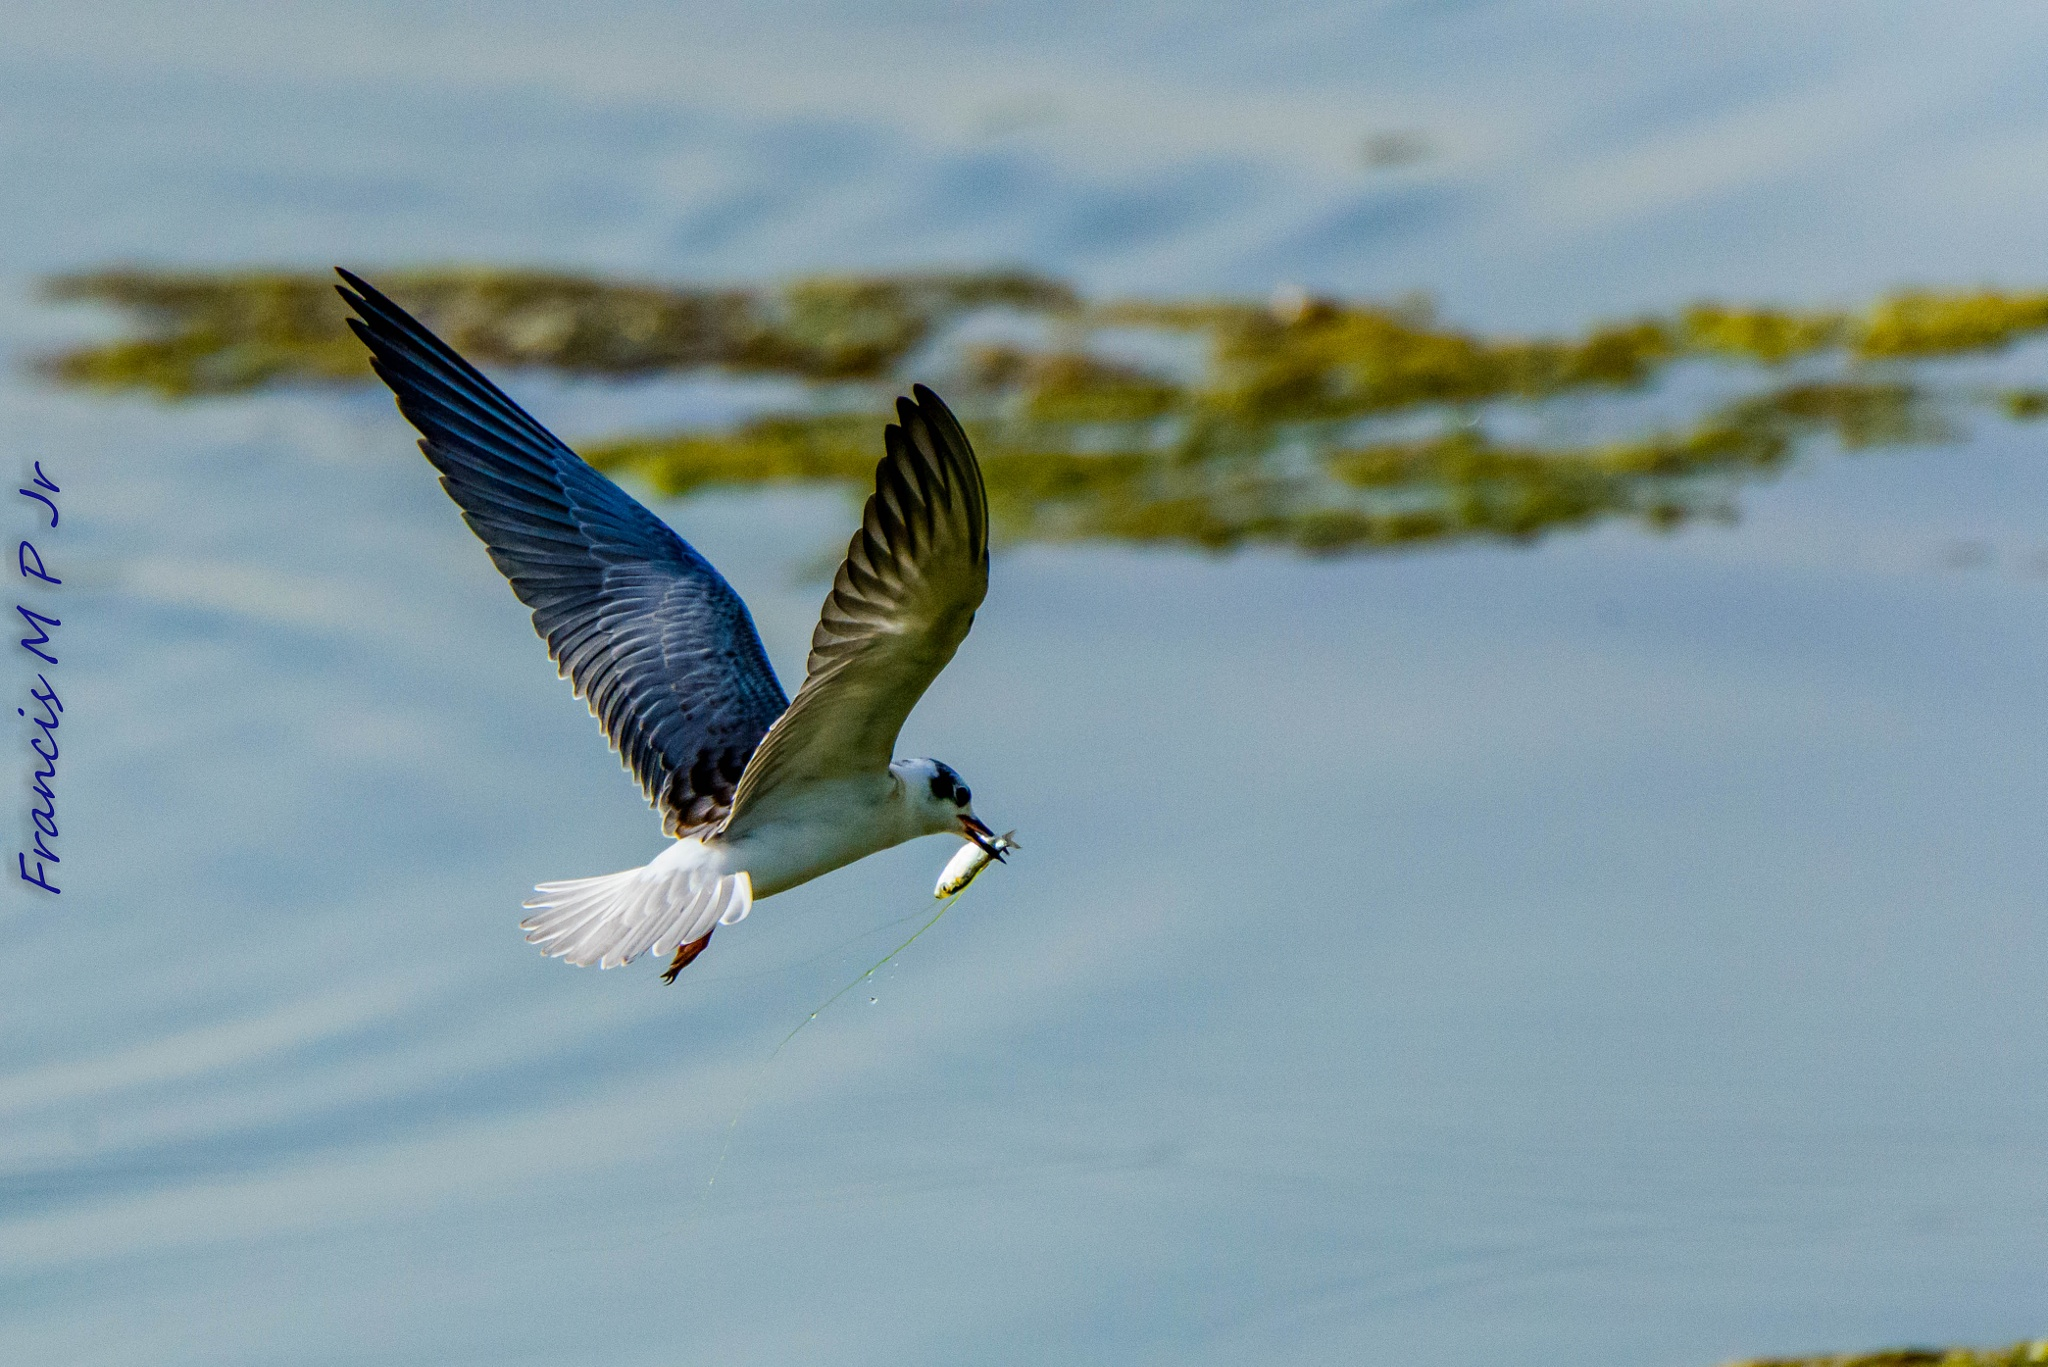 White winged tern by Francisco M Pastoril Jr